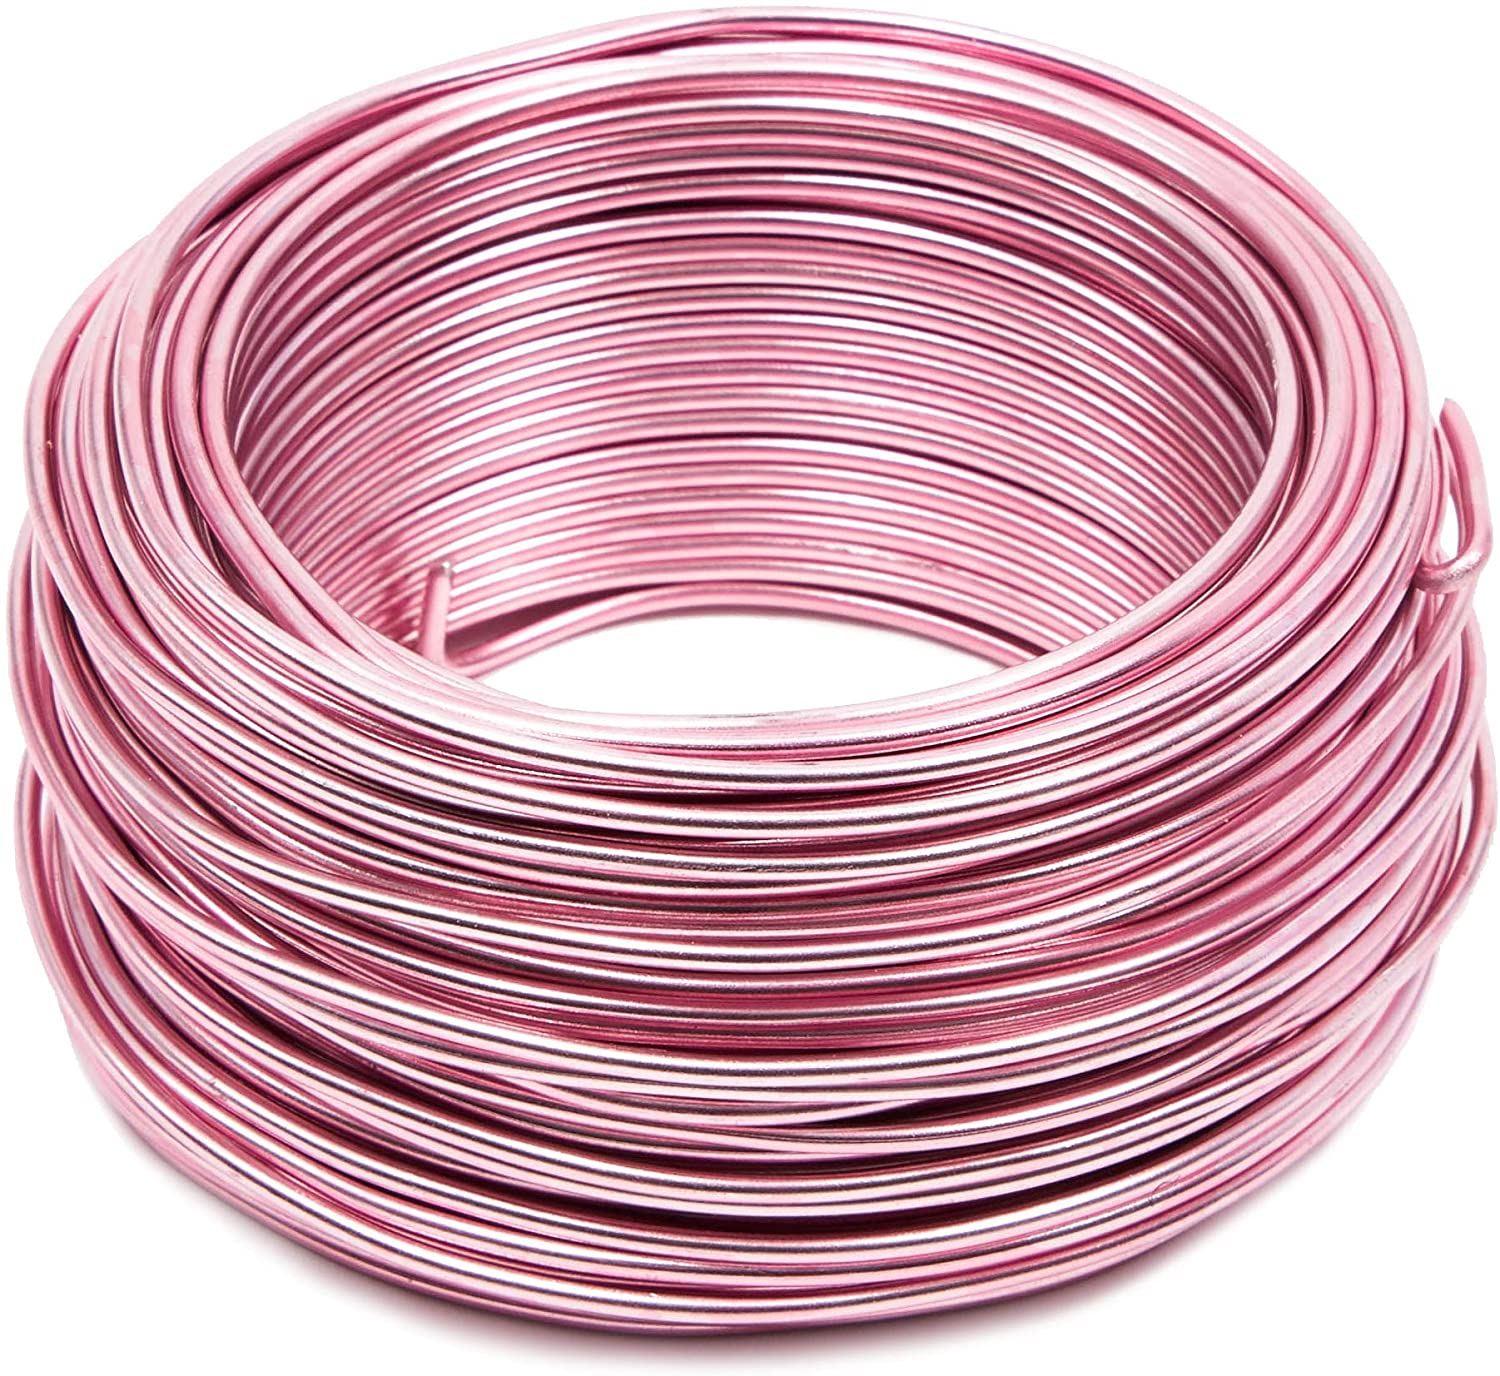 Bright Creations Aluminum Wire for DIY Crafts, 101 Feet, 12 Gauge, Light Pink